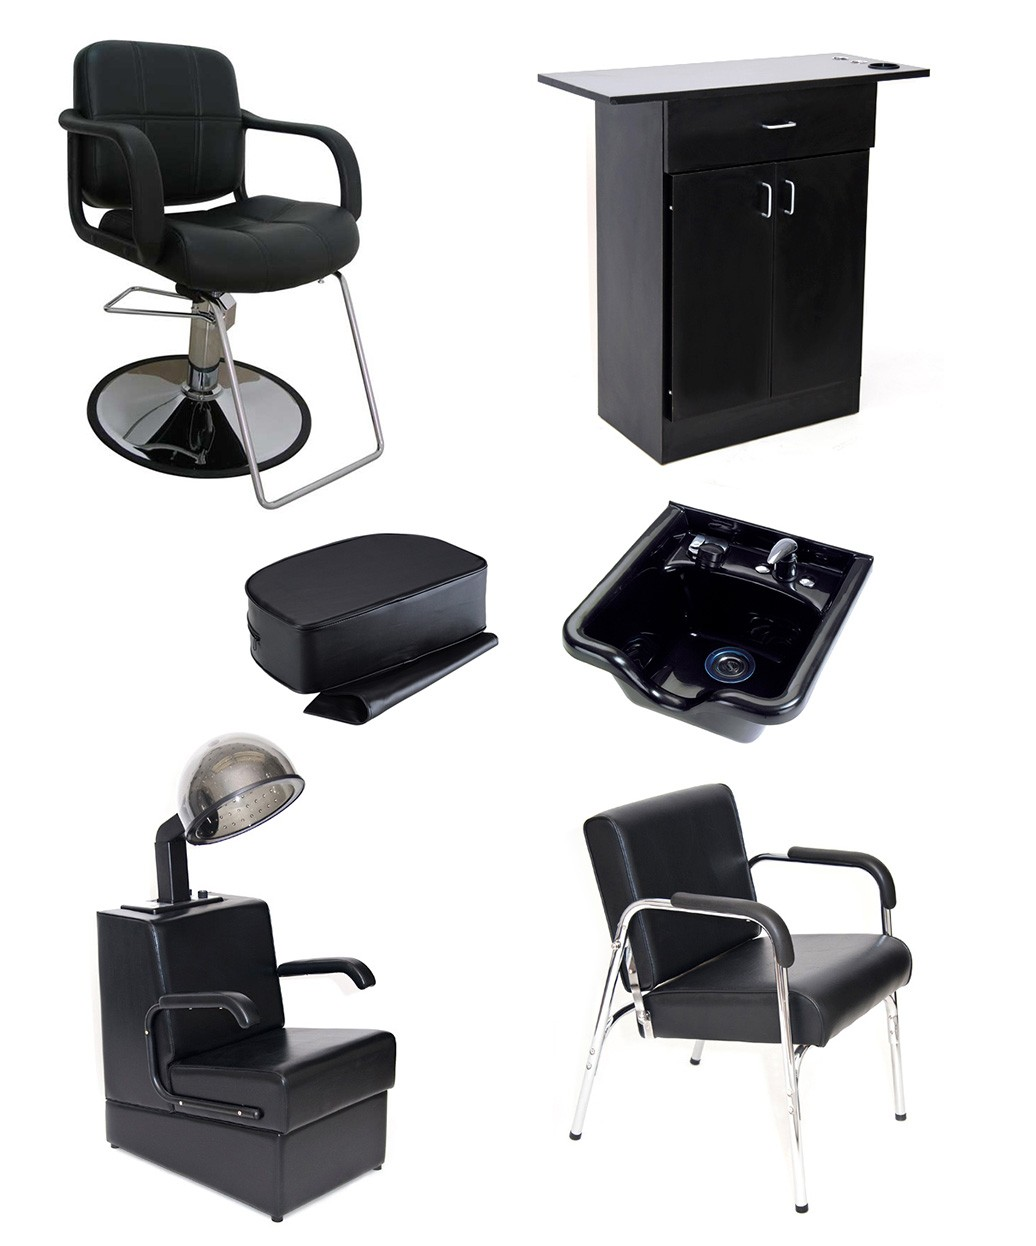 beauty salon chairs for sale how to make a wooden chair seat equipment packages package deals from buy rite 1 operator basic products